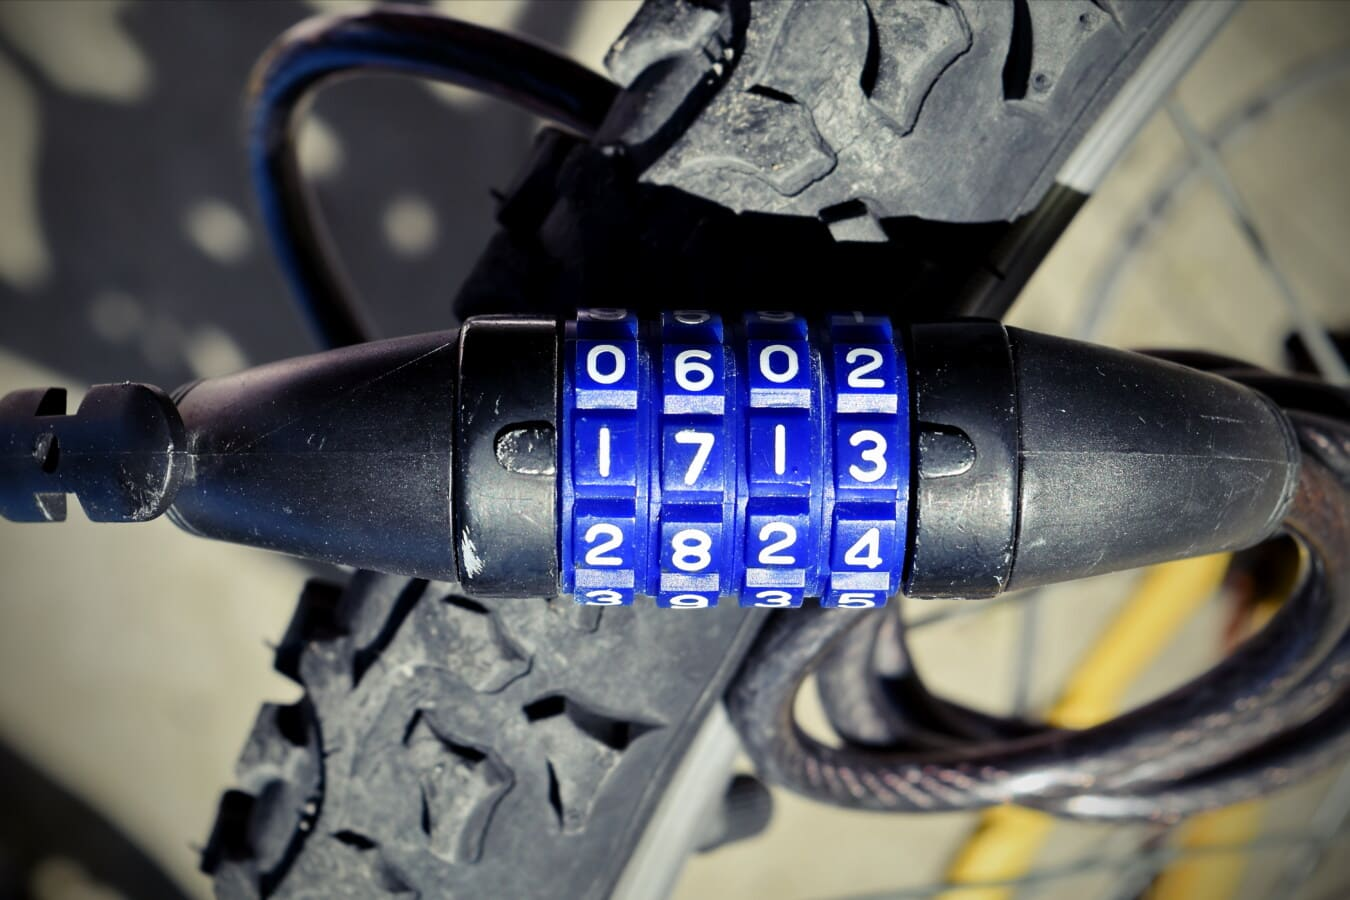 steel, bicycle, tire, lock, security, combination, number, device, fastener, machinery